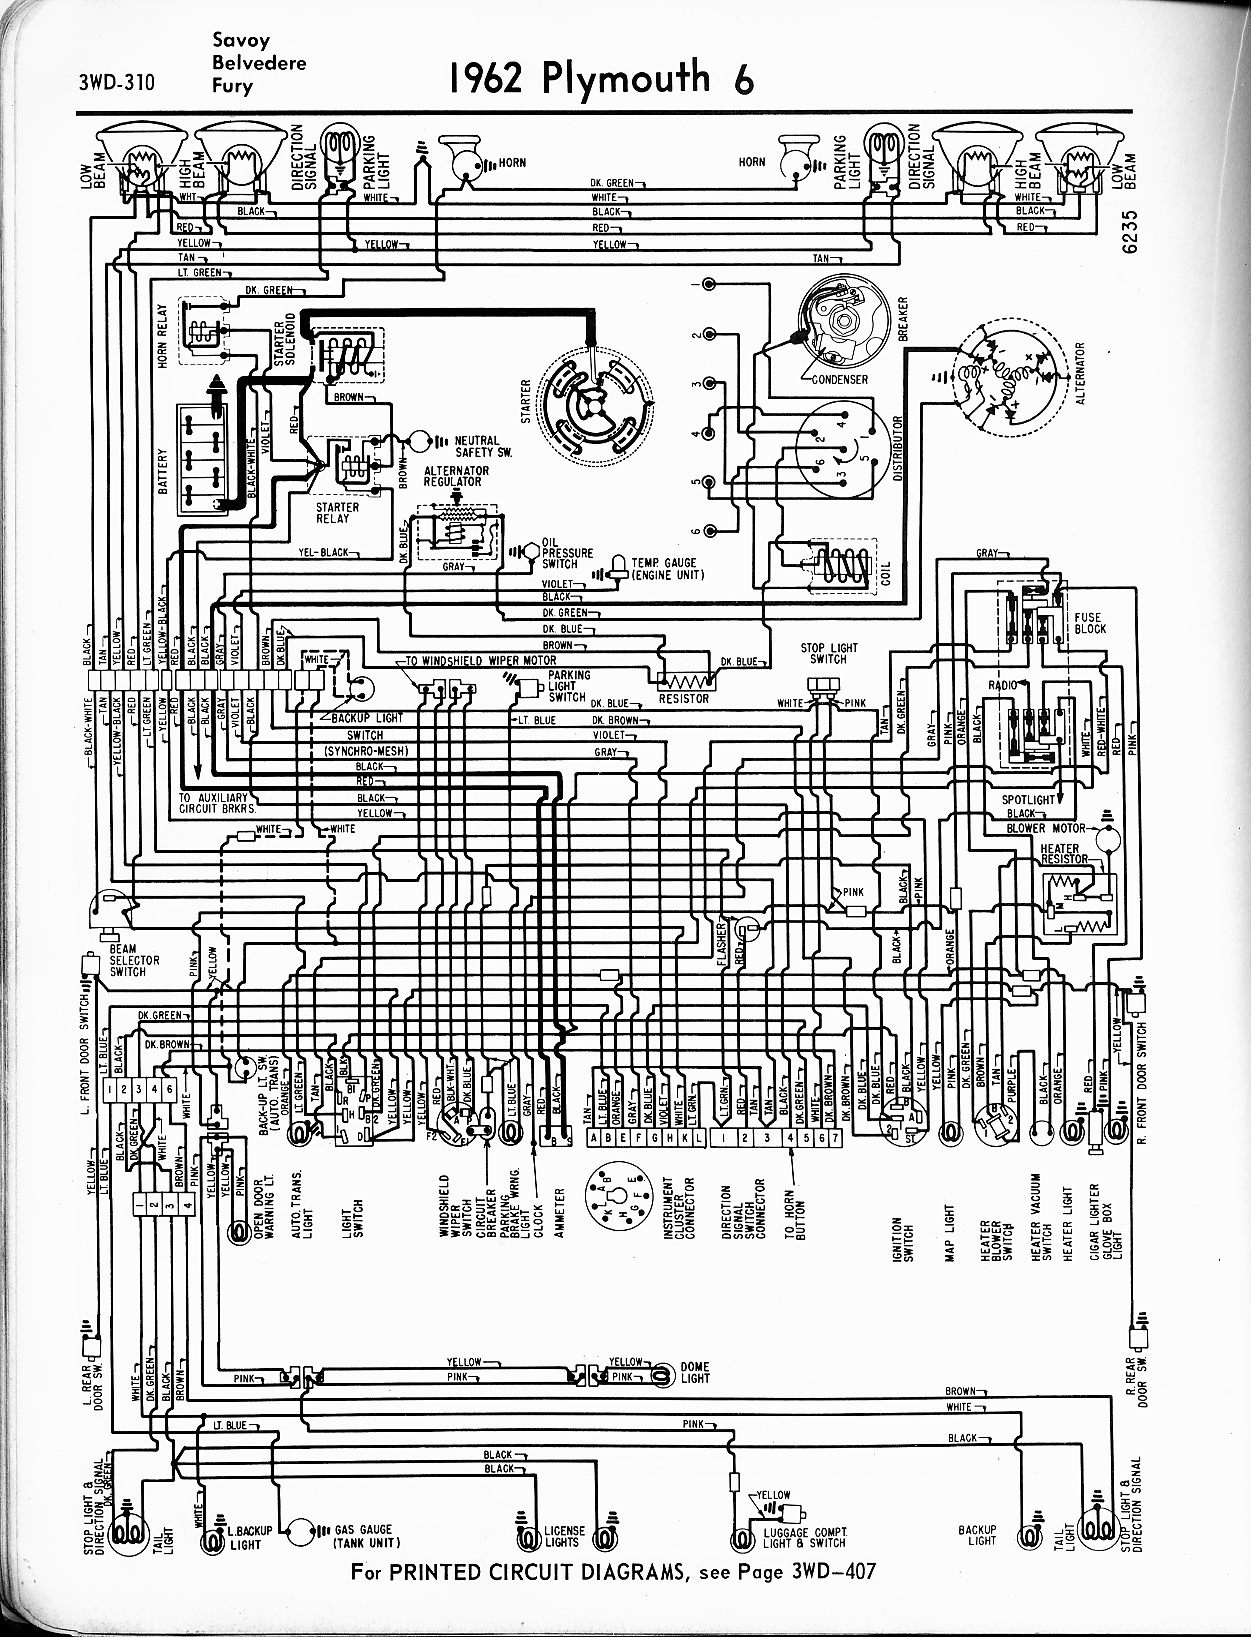 Mwire on 1964 Plymouth Valiant Wiring Diagrams